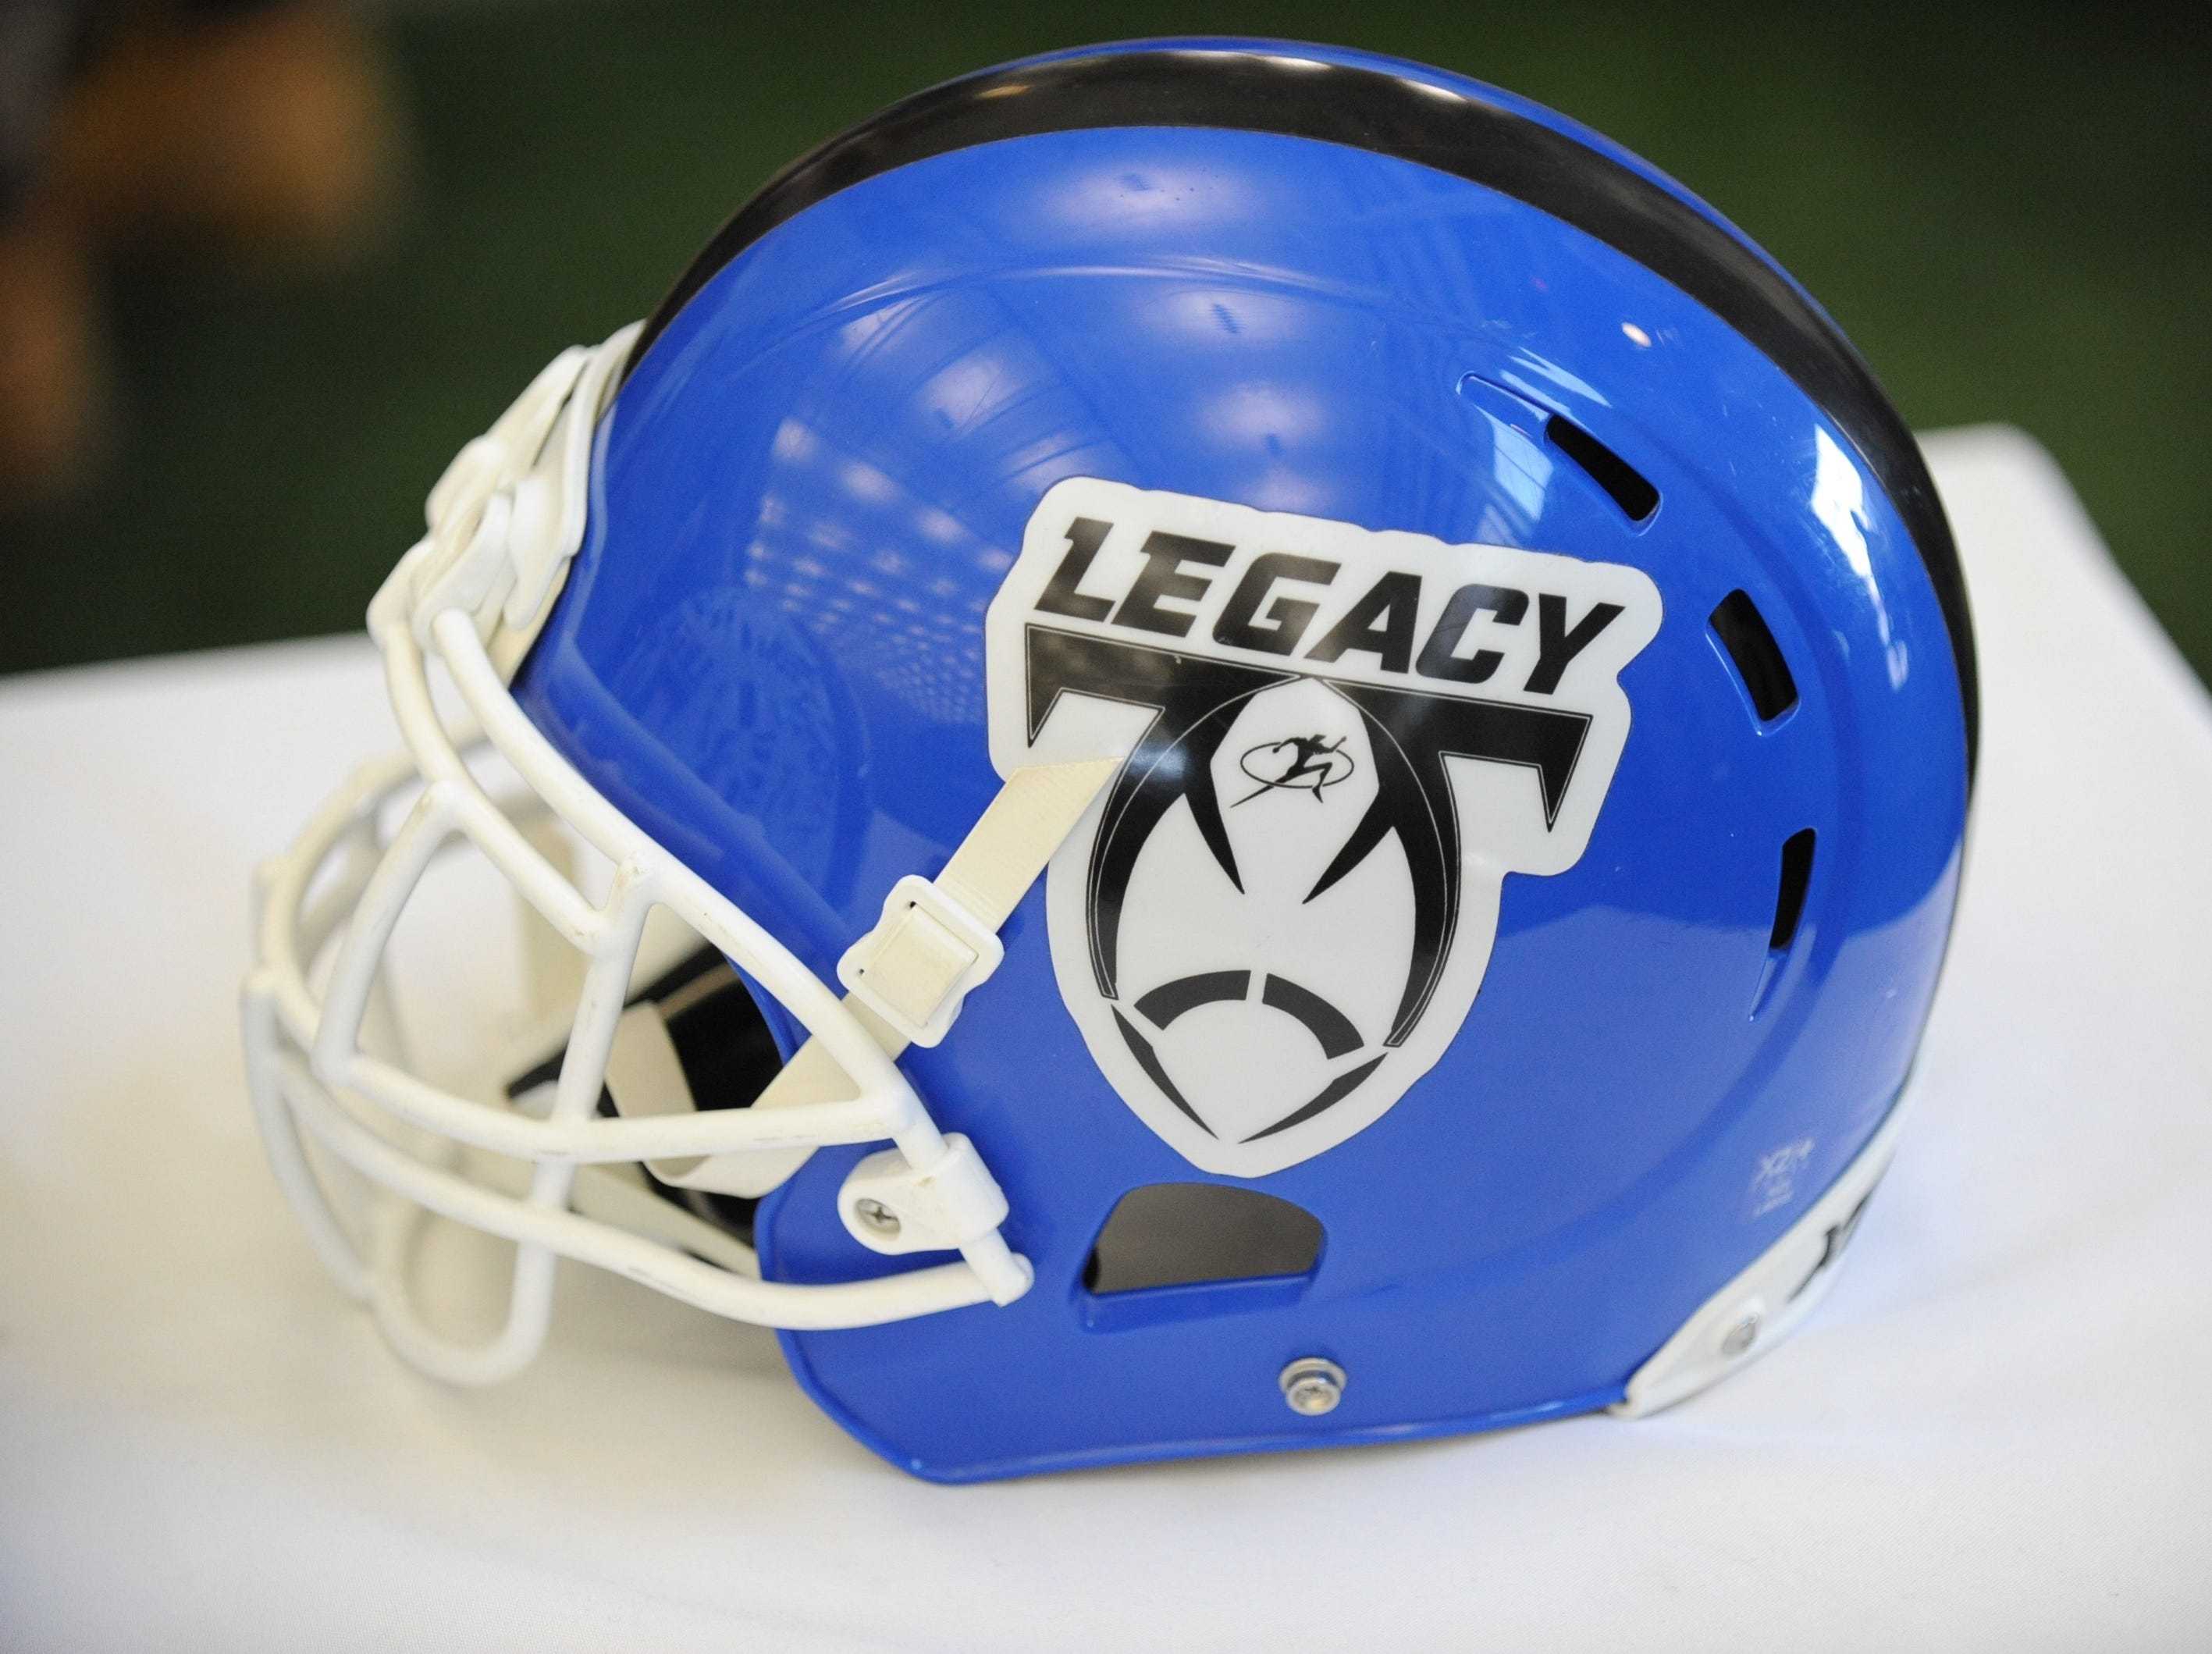 One of the Legacy football program's helmets is displayed.